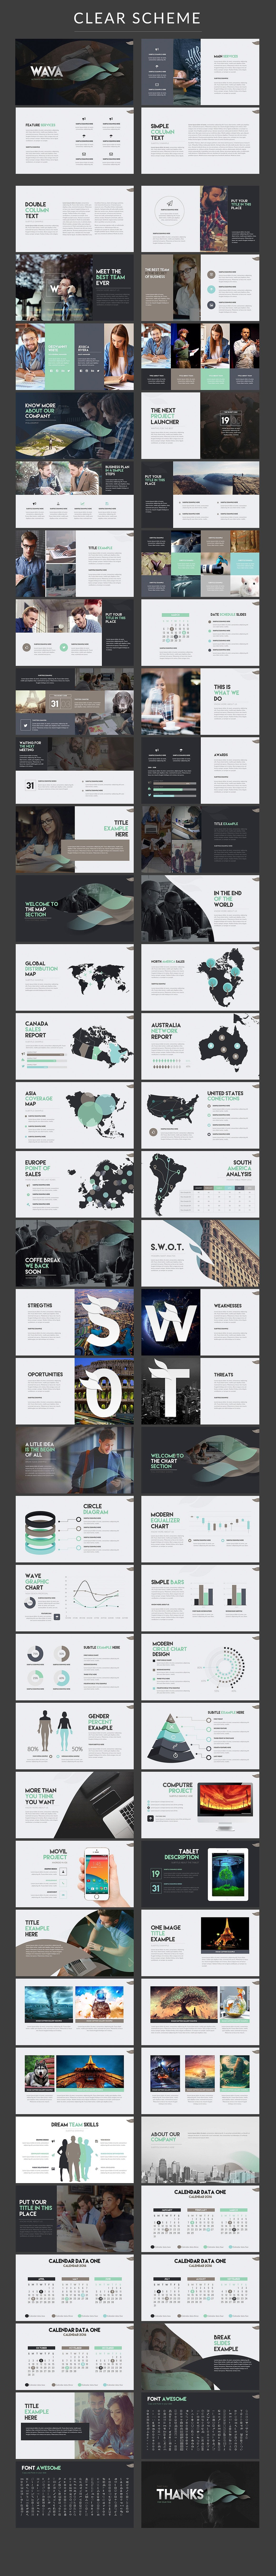 20 Powerpoint Templates with 81% OFF - Wava 02